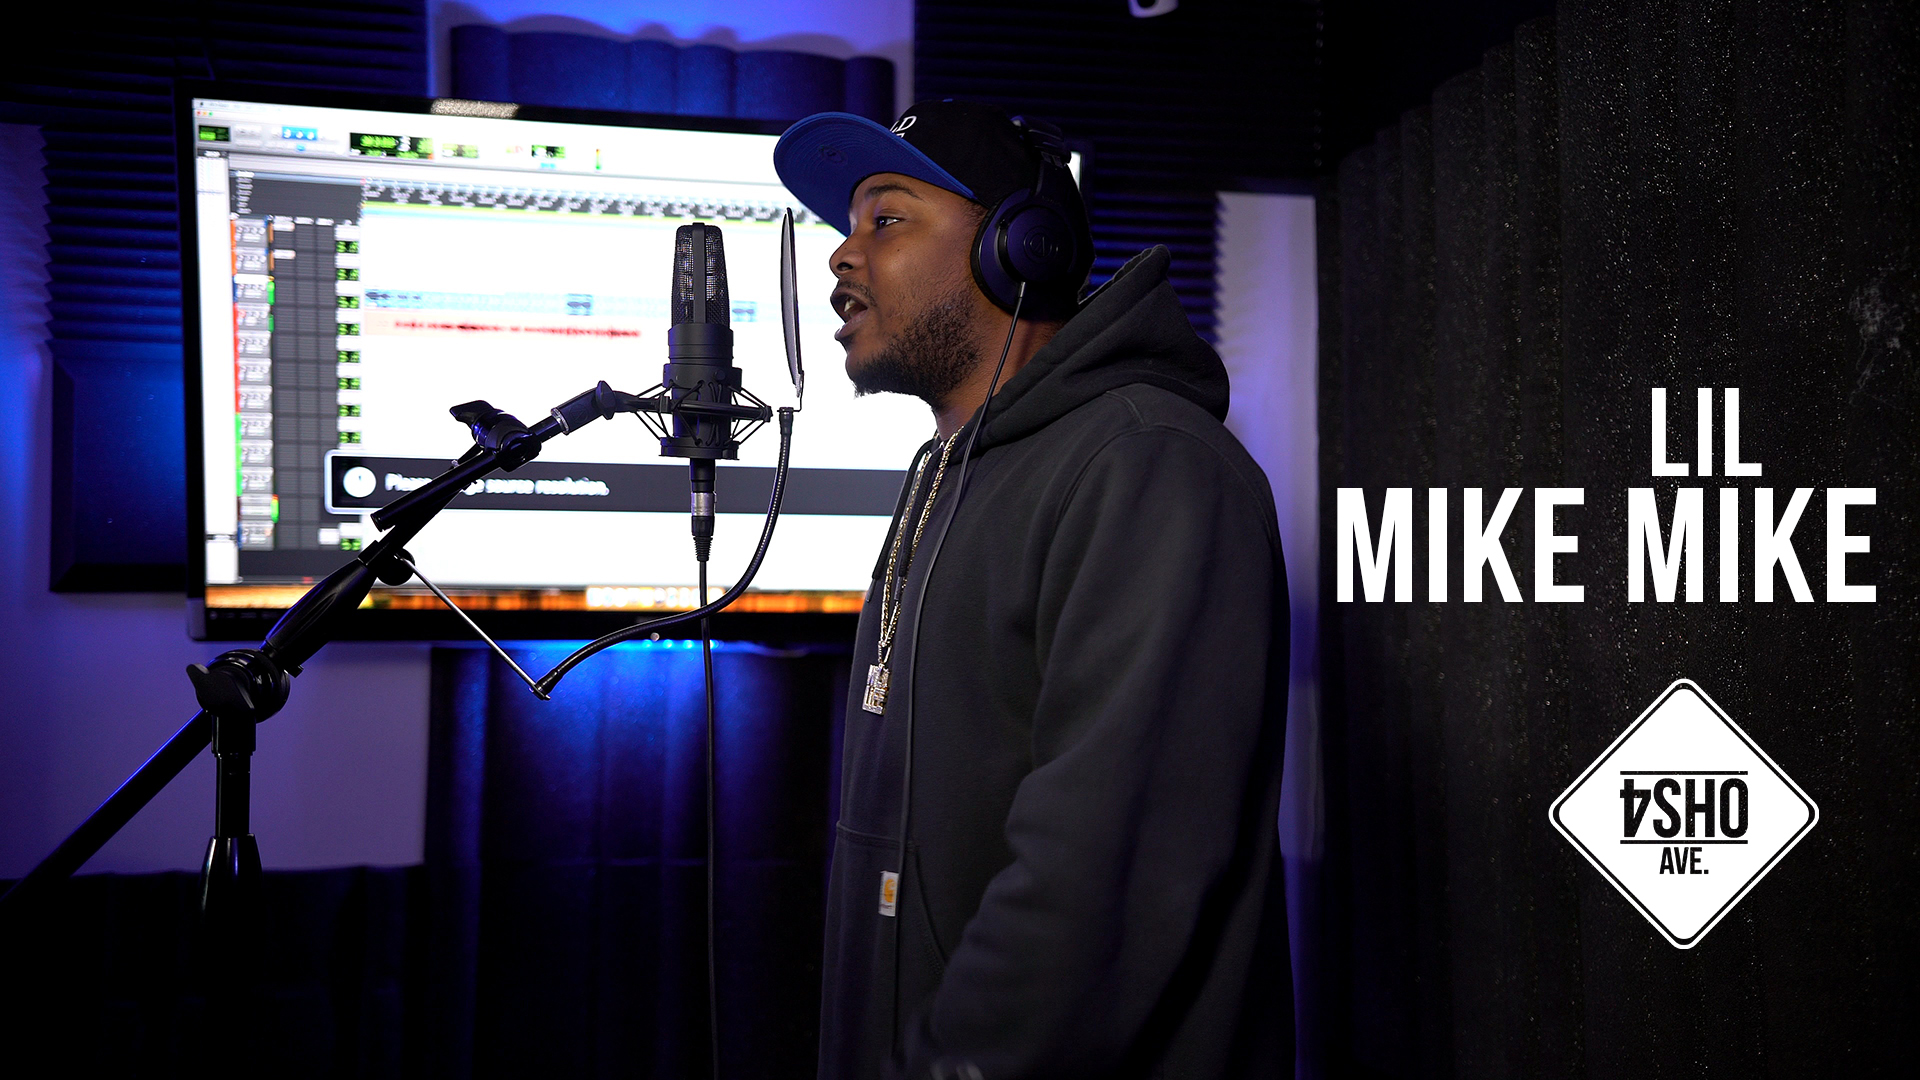 Lil Mike Mike